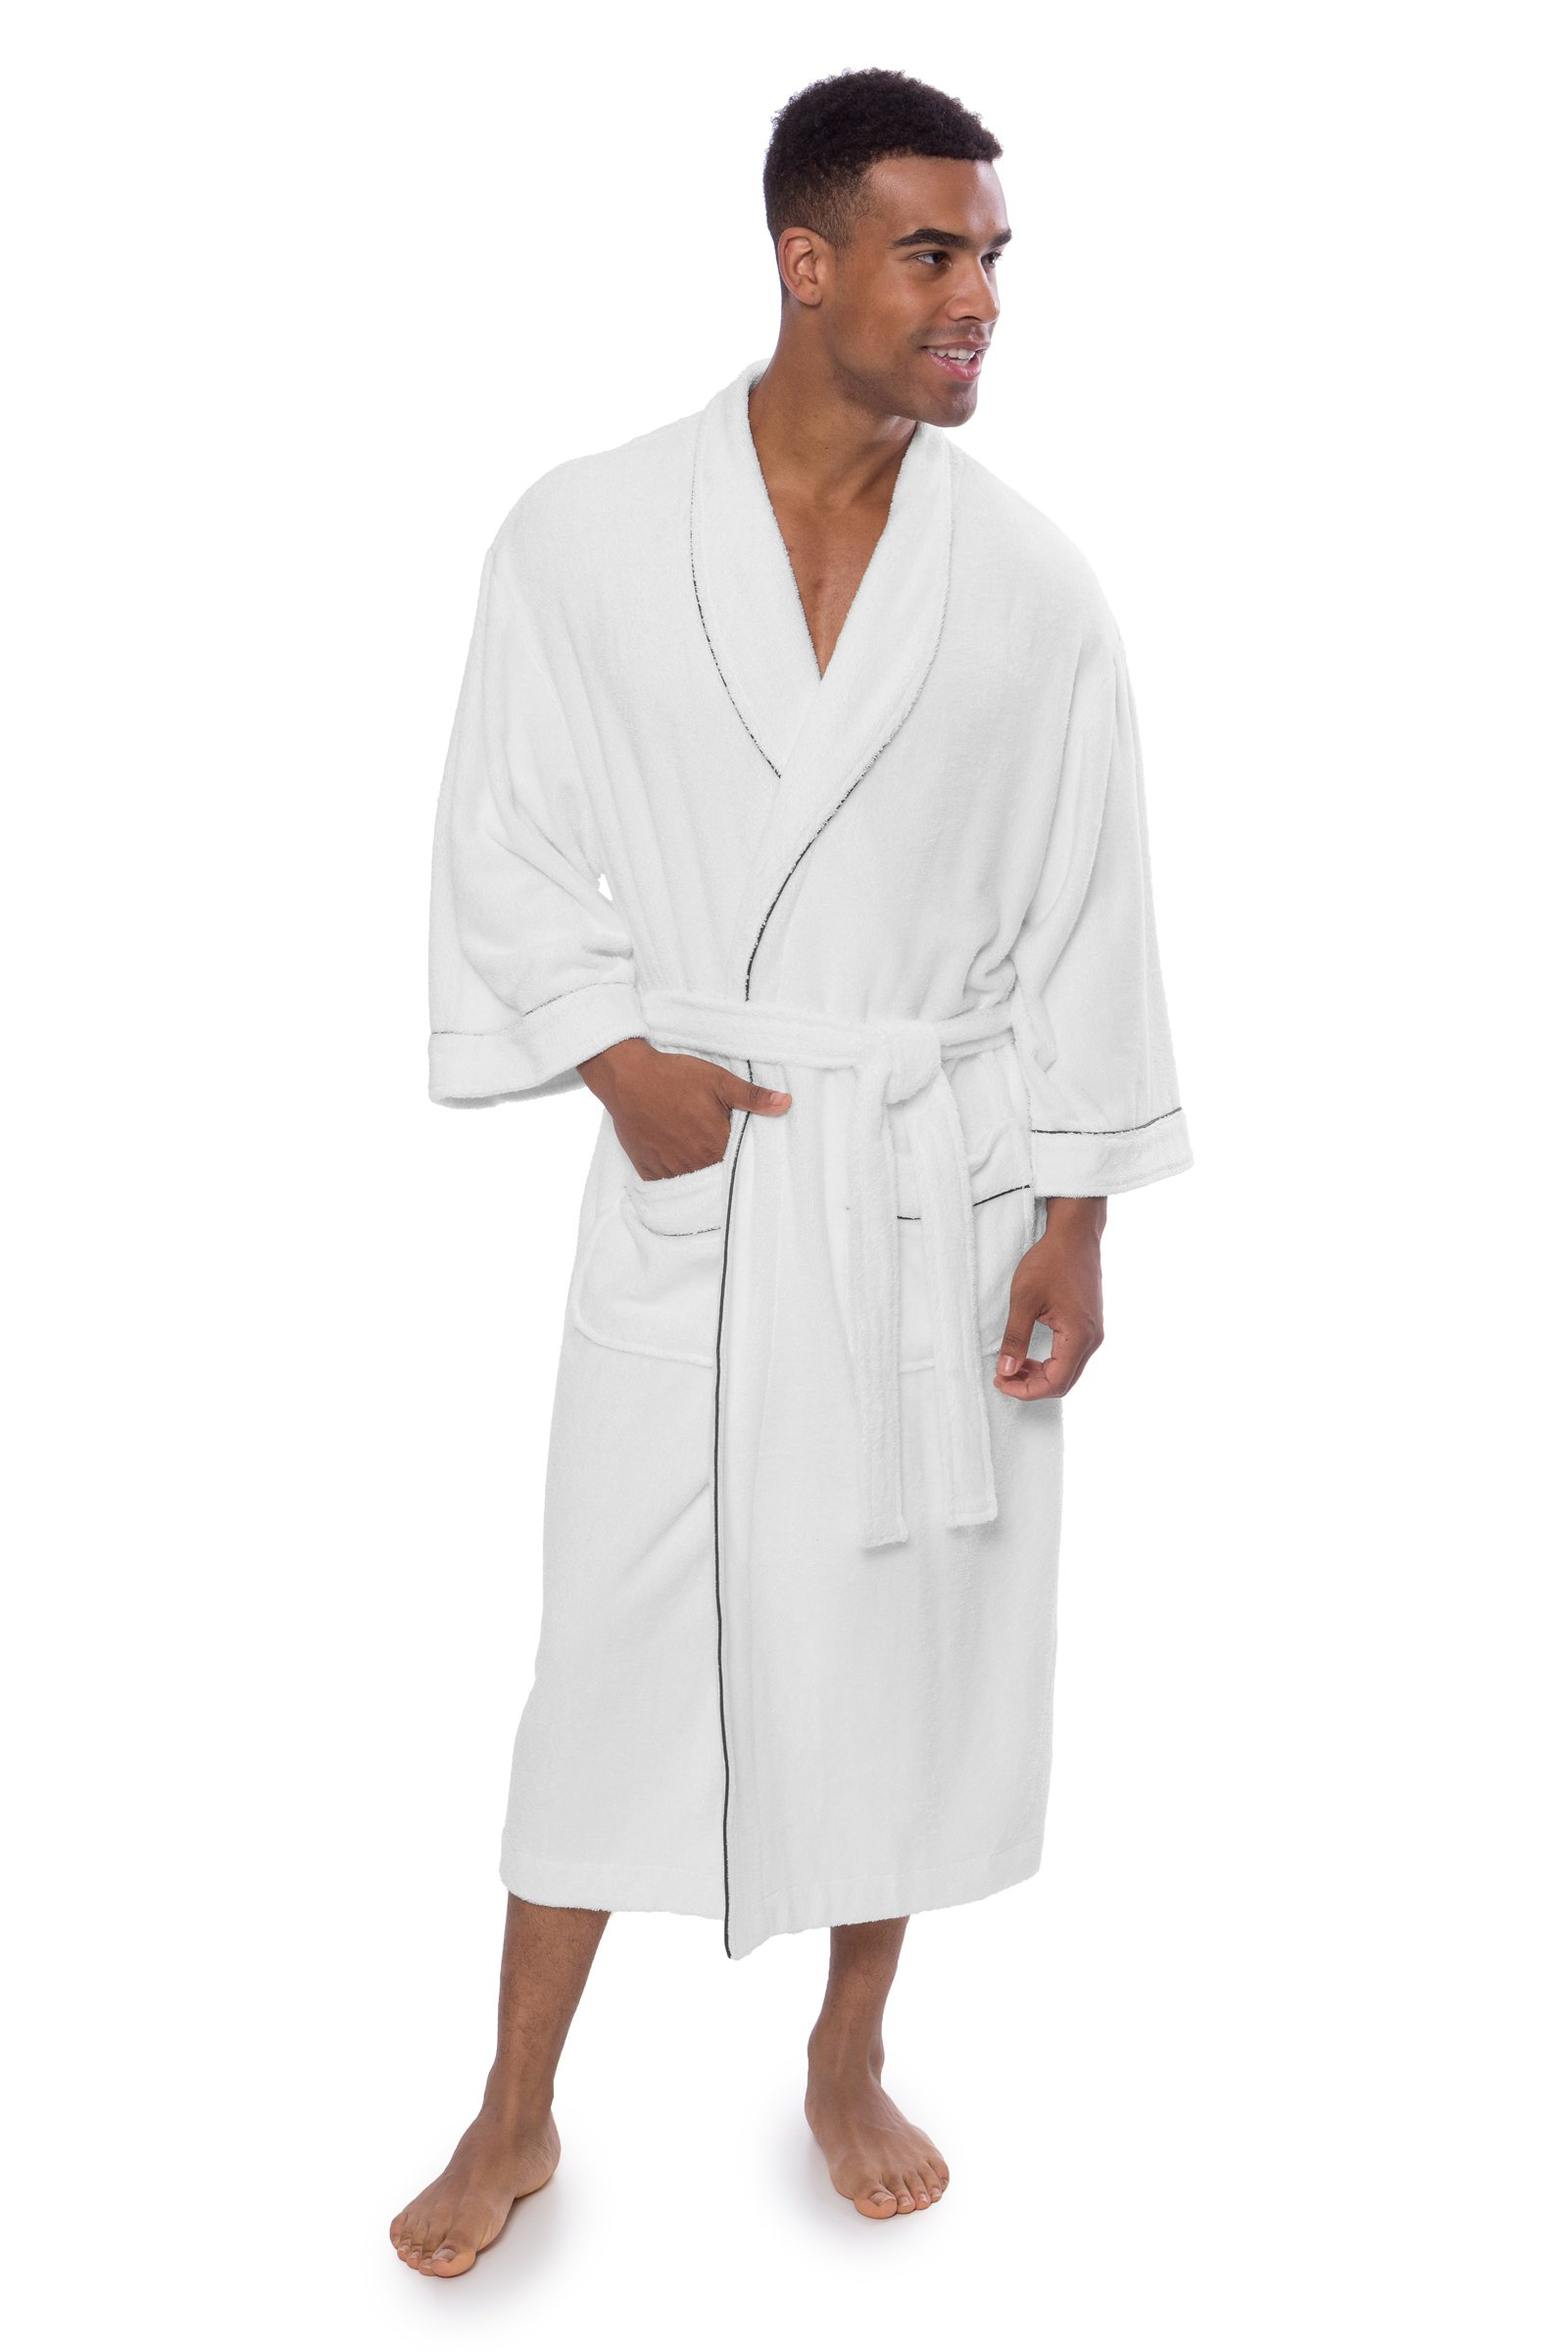 Men's Luxury Terry Cloth Bathrobe - Soft Spa Robe by Texere (EcoComfort, Natural White, Small/ Medium ) Thoughtful Gift for Men MB0101-NWH-SM